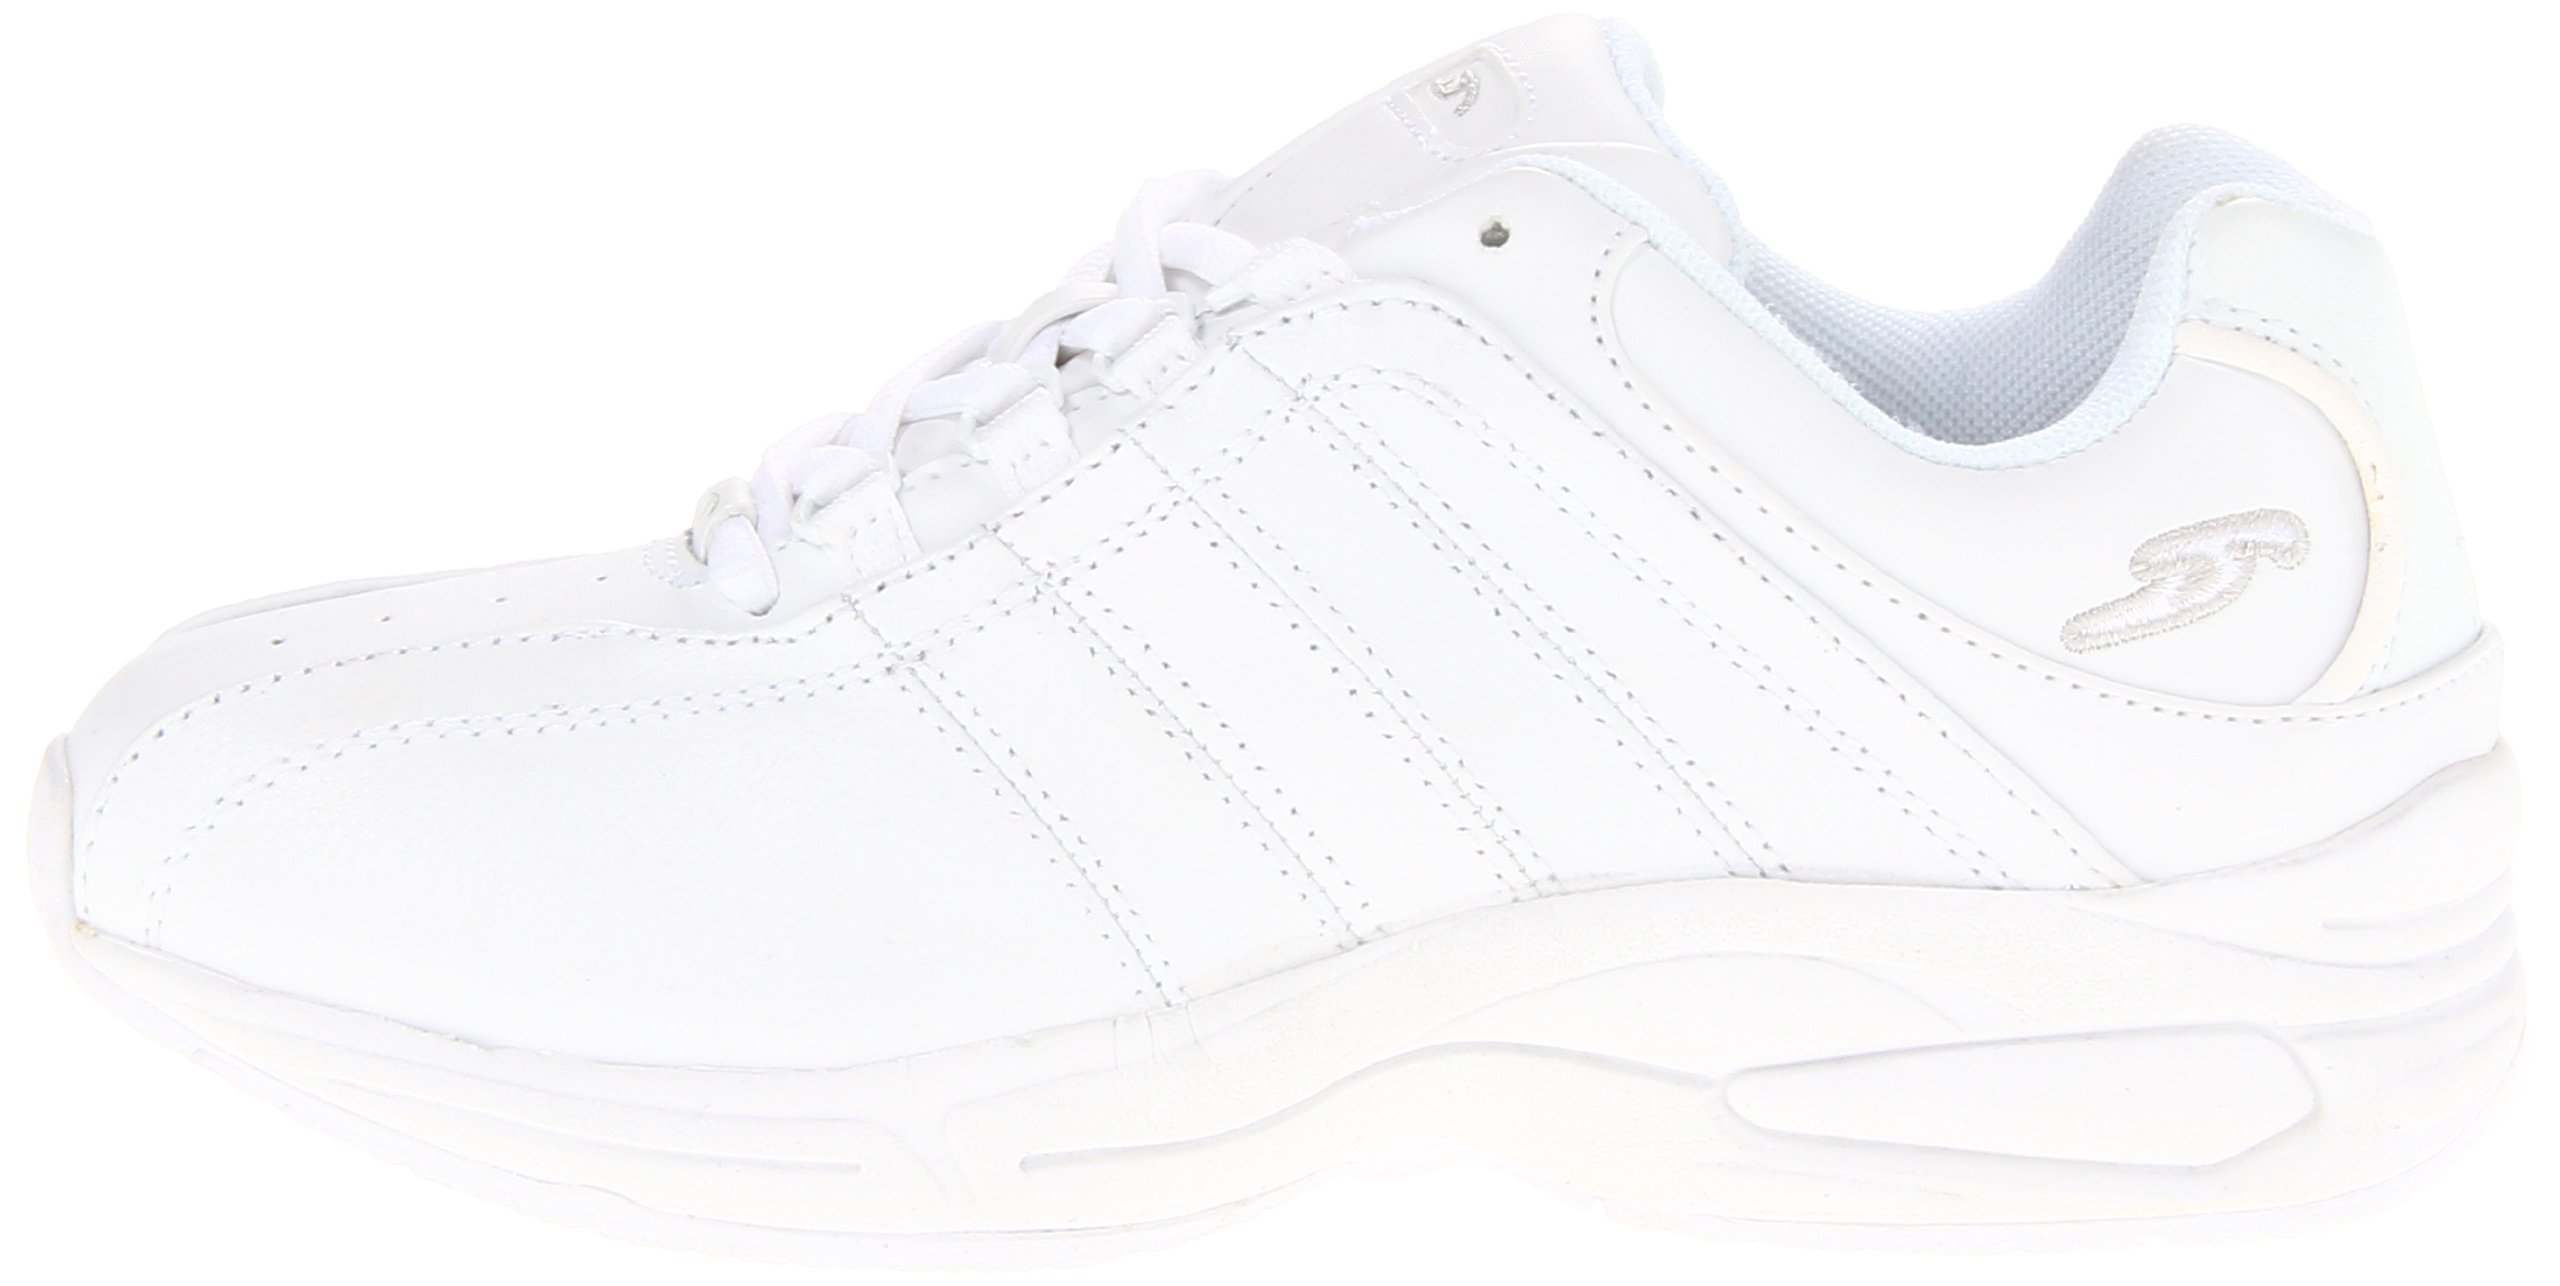 Dr. Scholl's Women's Kimberly Slip Resistant Work Shoe,Super White,8.5 W US by Dr. Scholl's (Image #5)